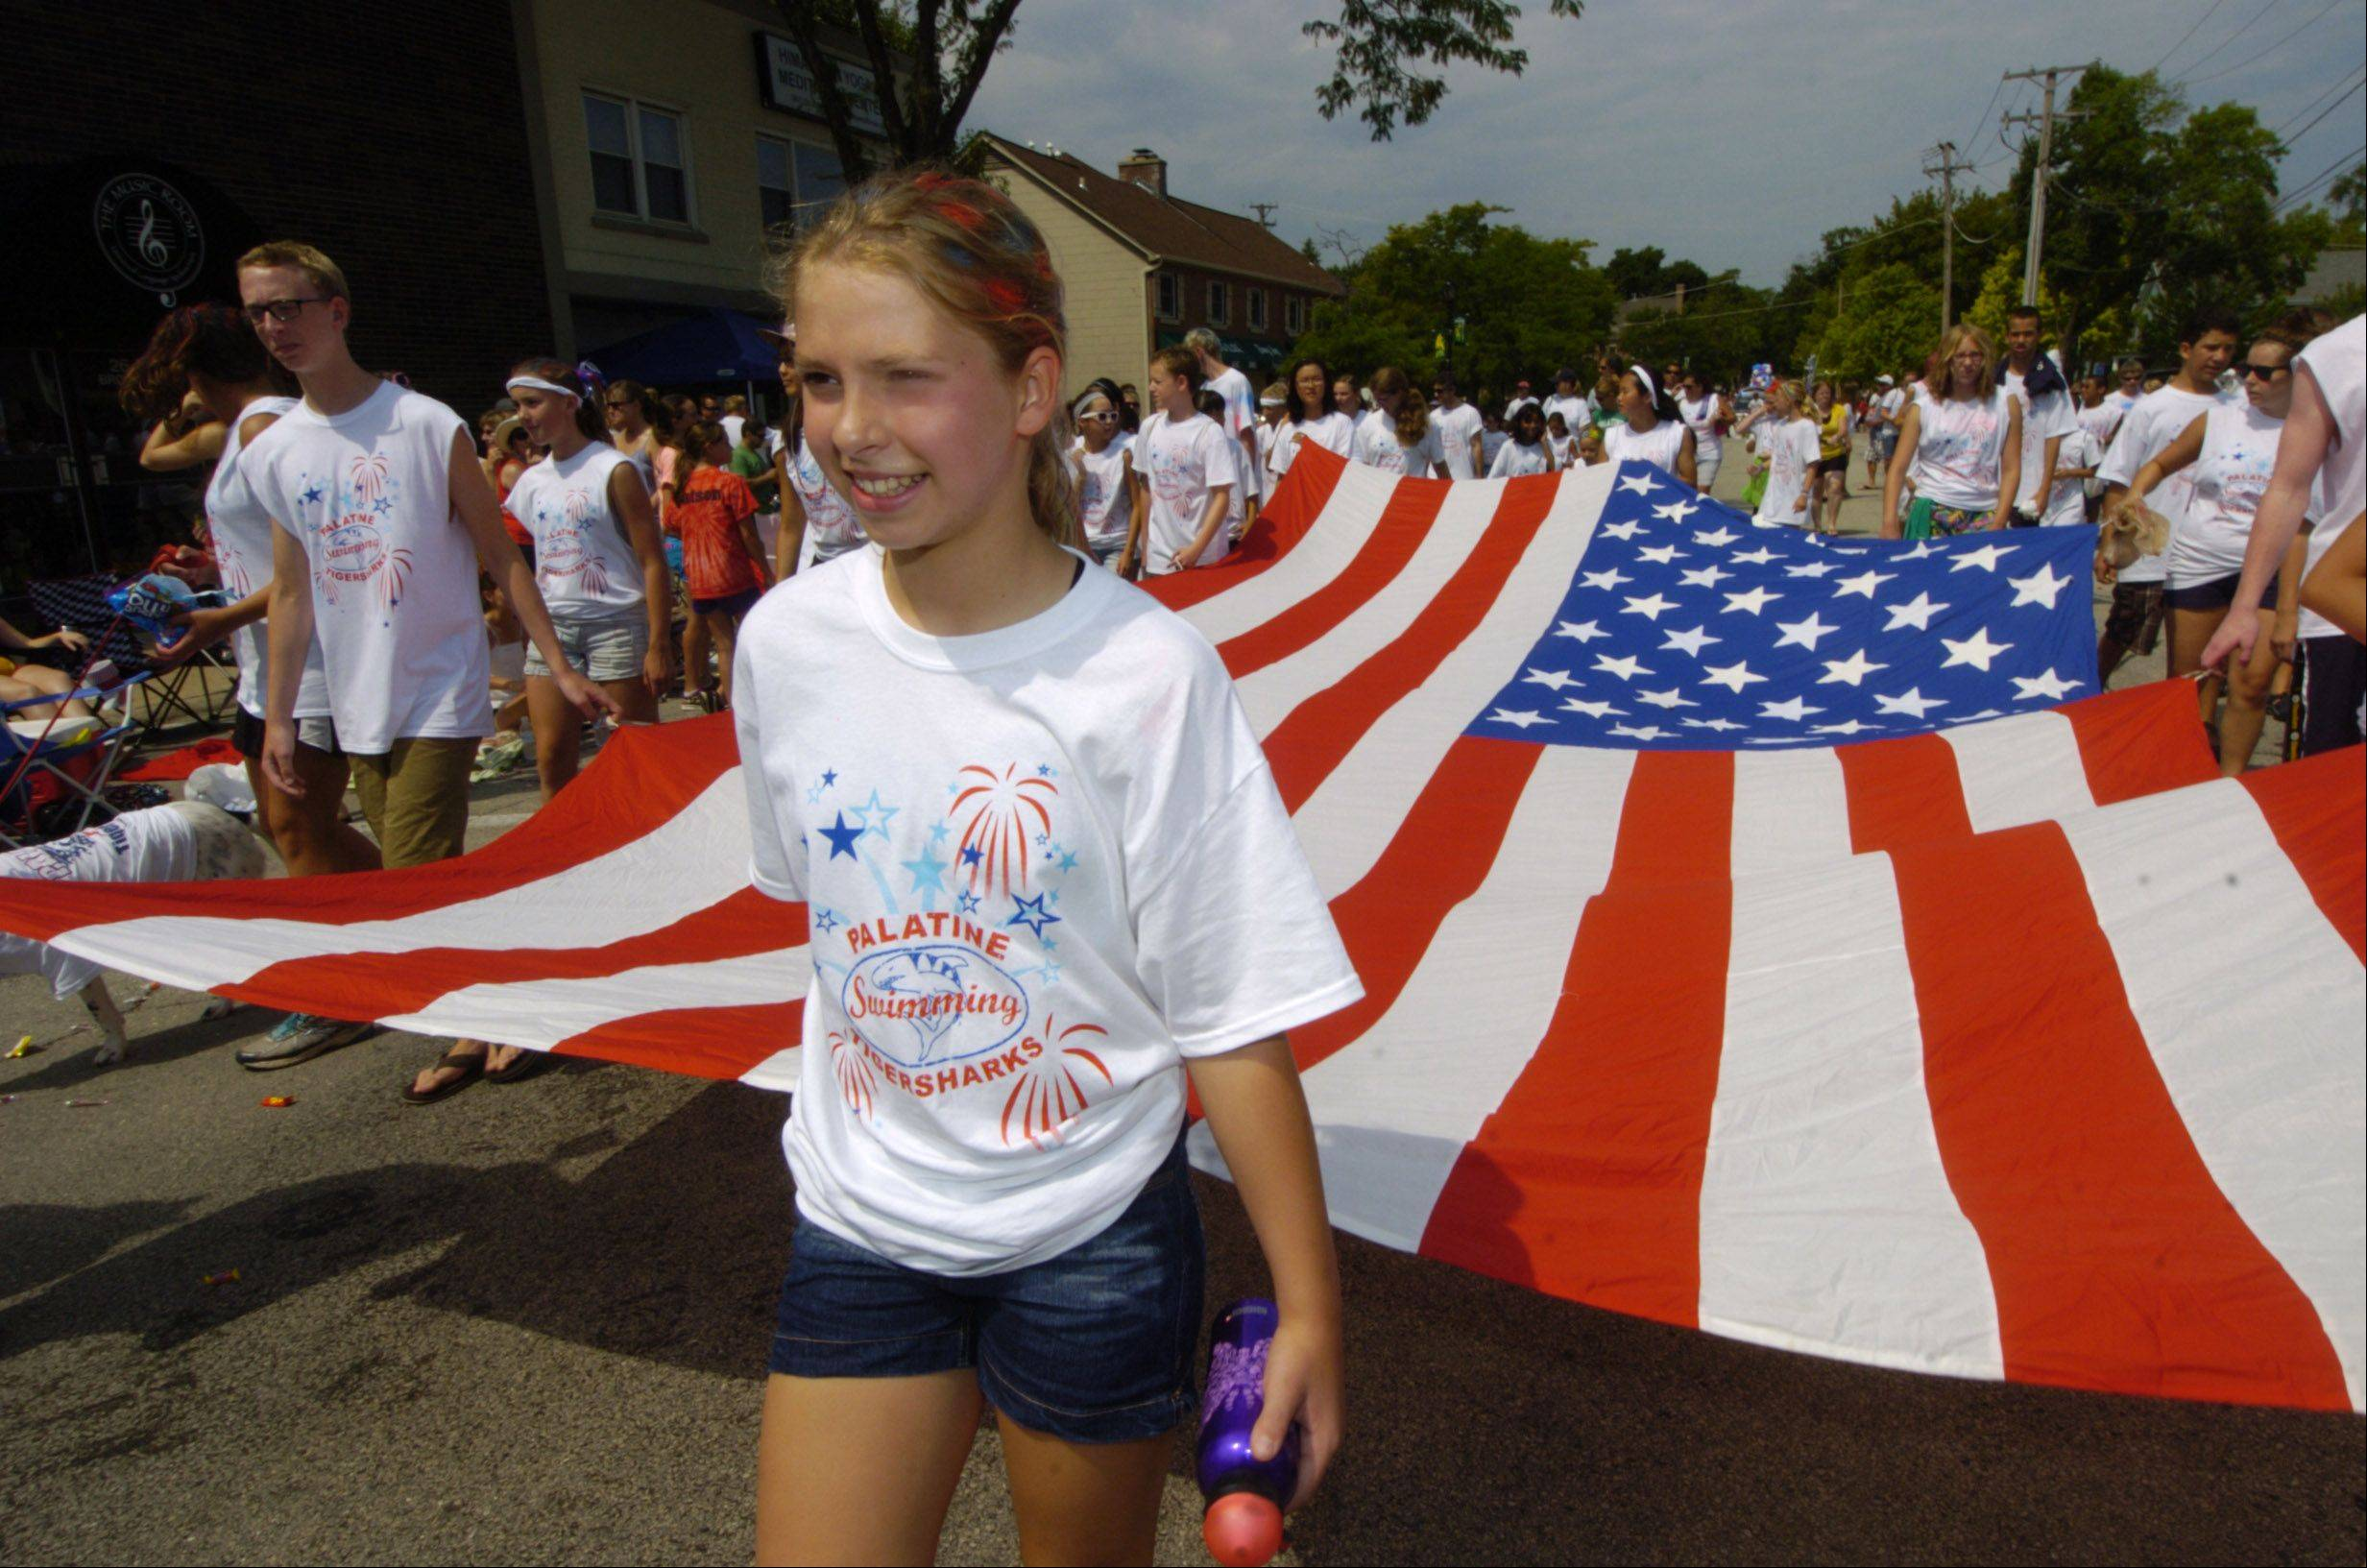 Michala Kueker, 11, of the Palatine Tiger Sharks swim team helps carry a large American flag during the Palatine Hometown Parade Saturday.